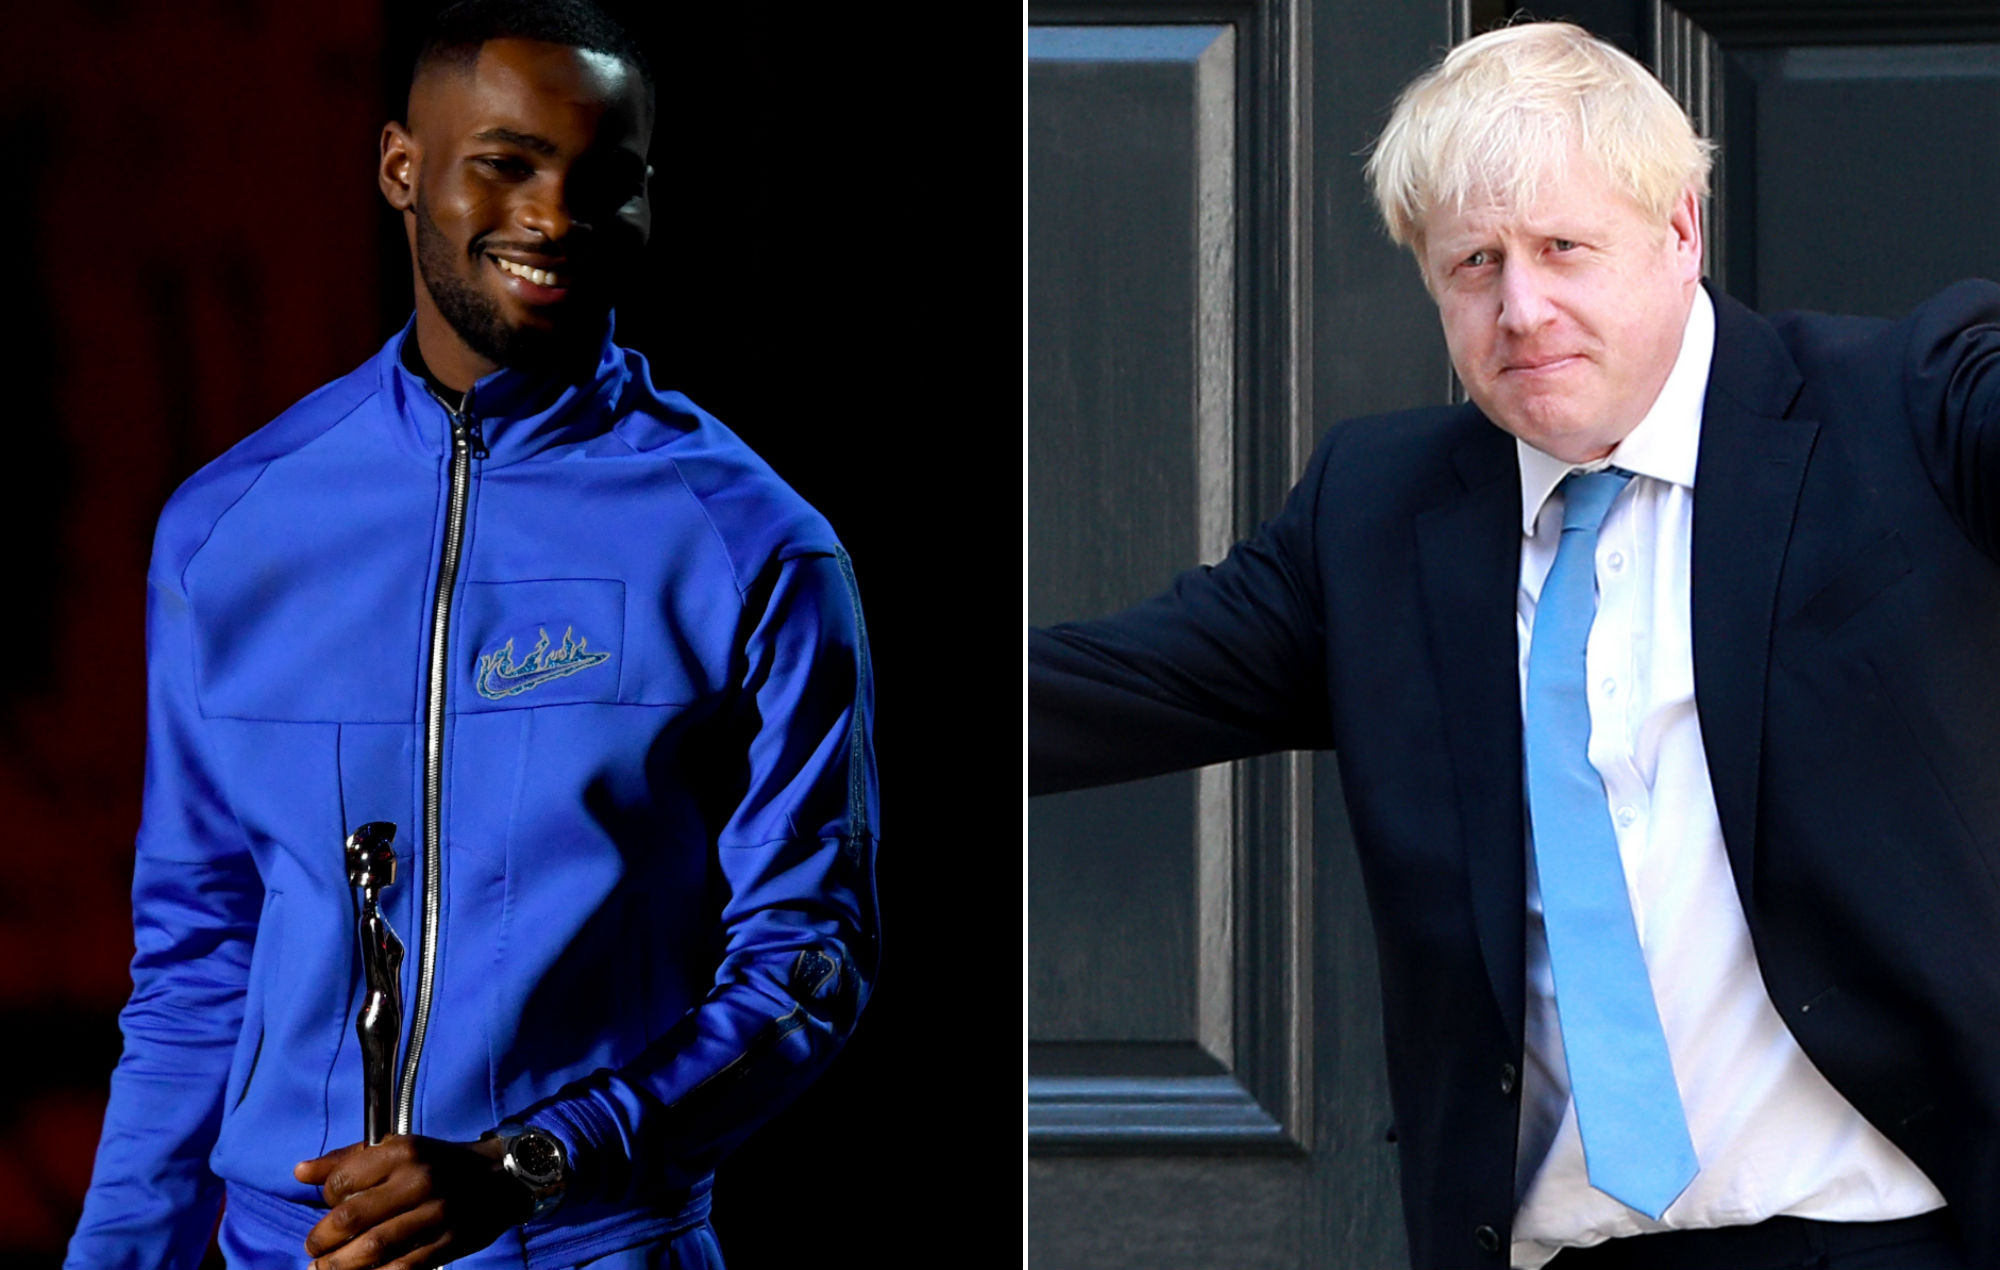 Dave shares Boris Johnson's Africa comments to back racism accusations